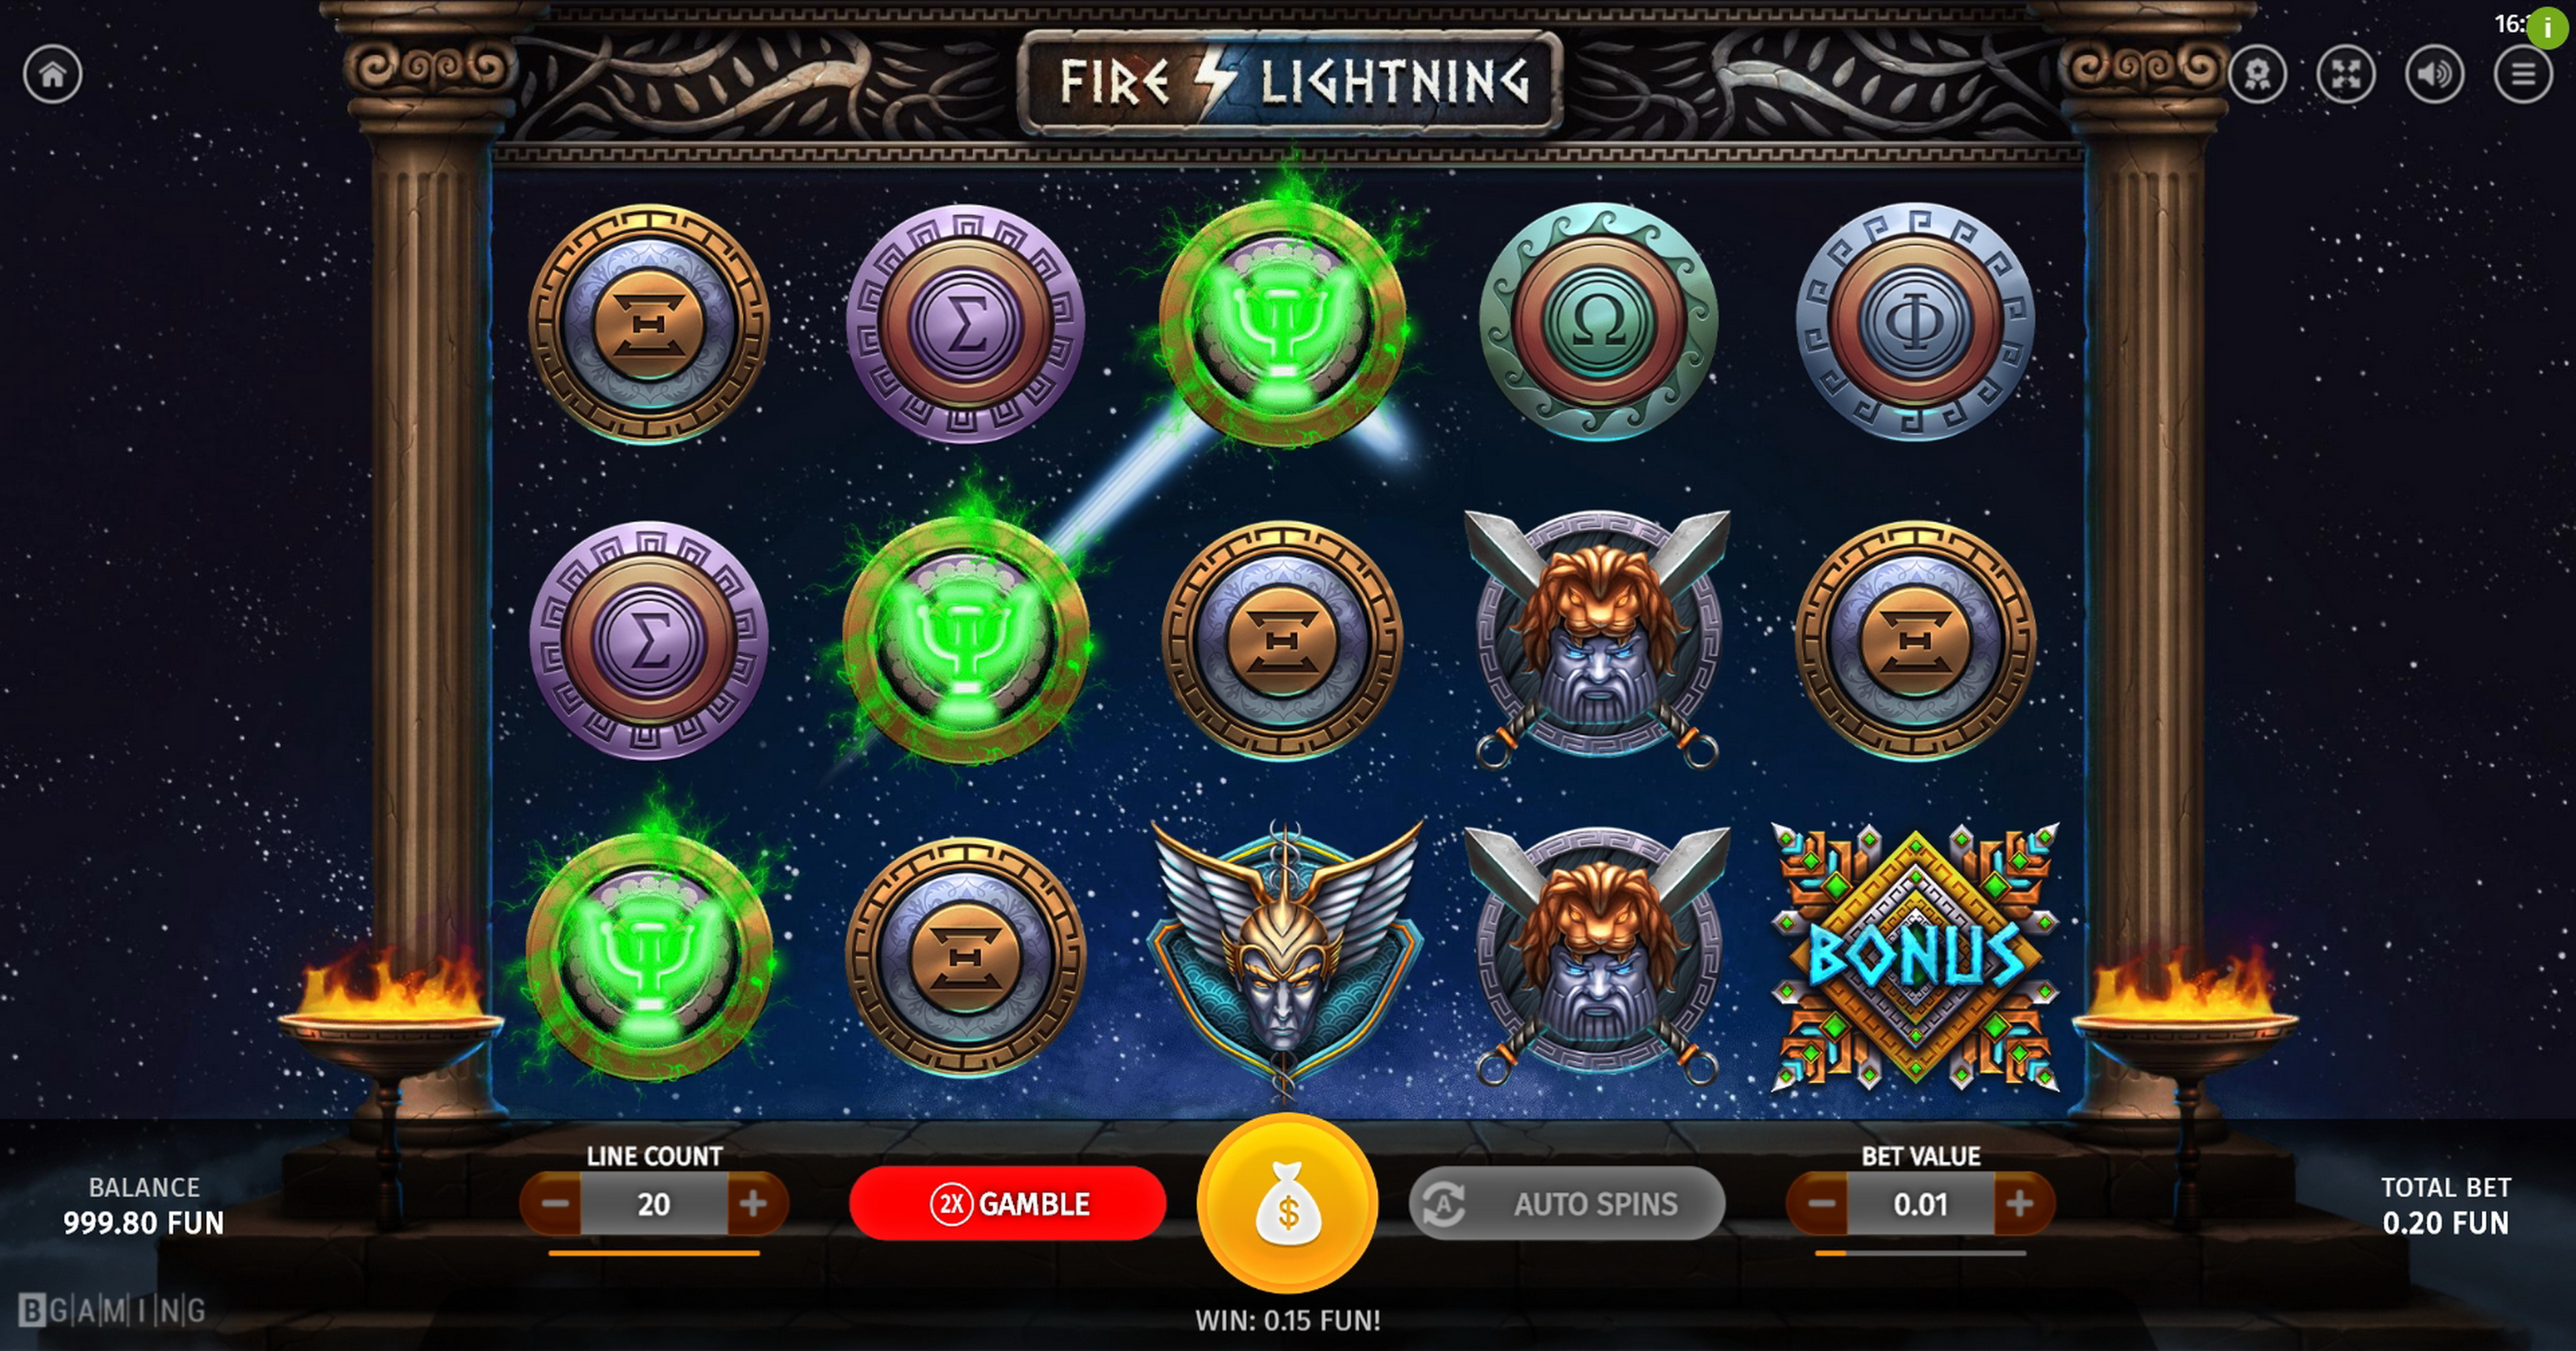 Win Money in Fire Lightning Free Slot Game by BGAMING